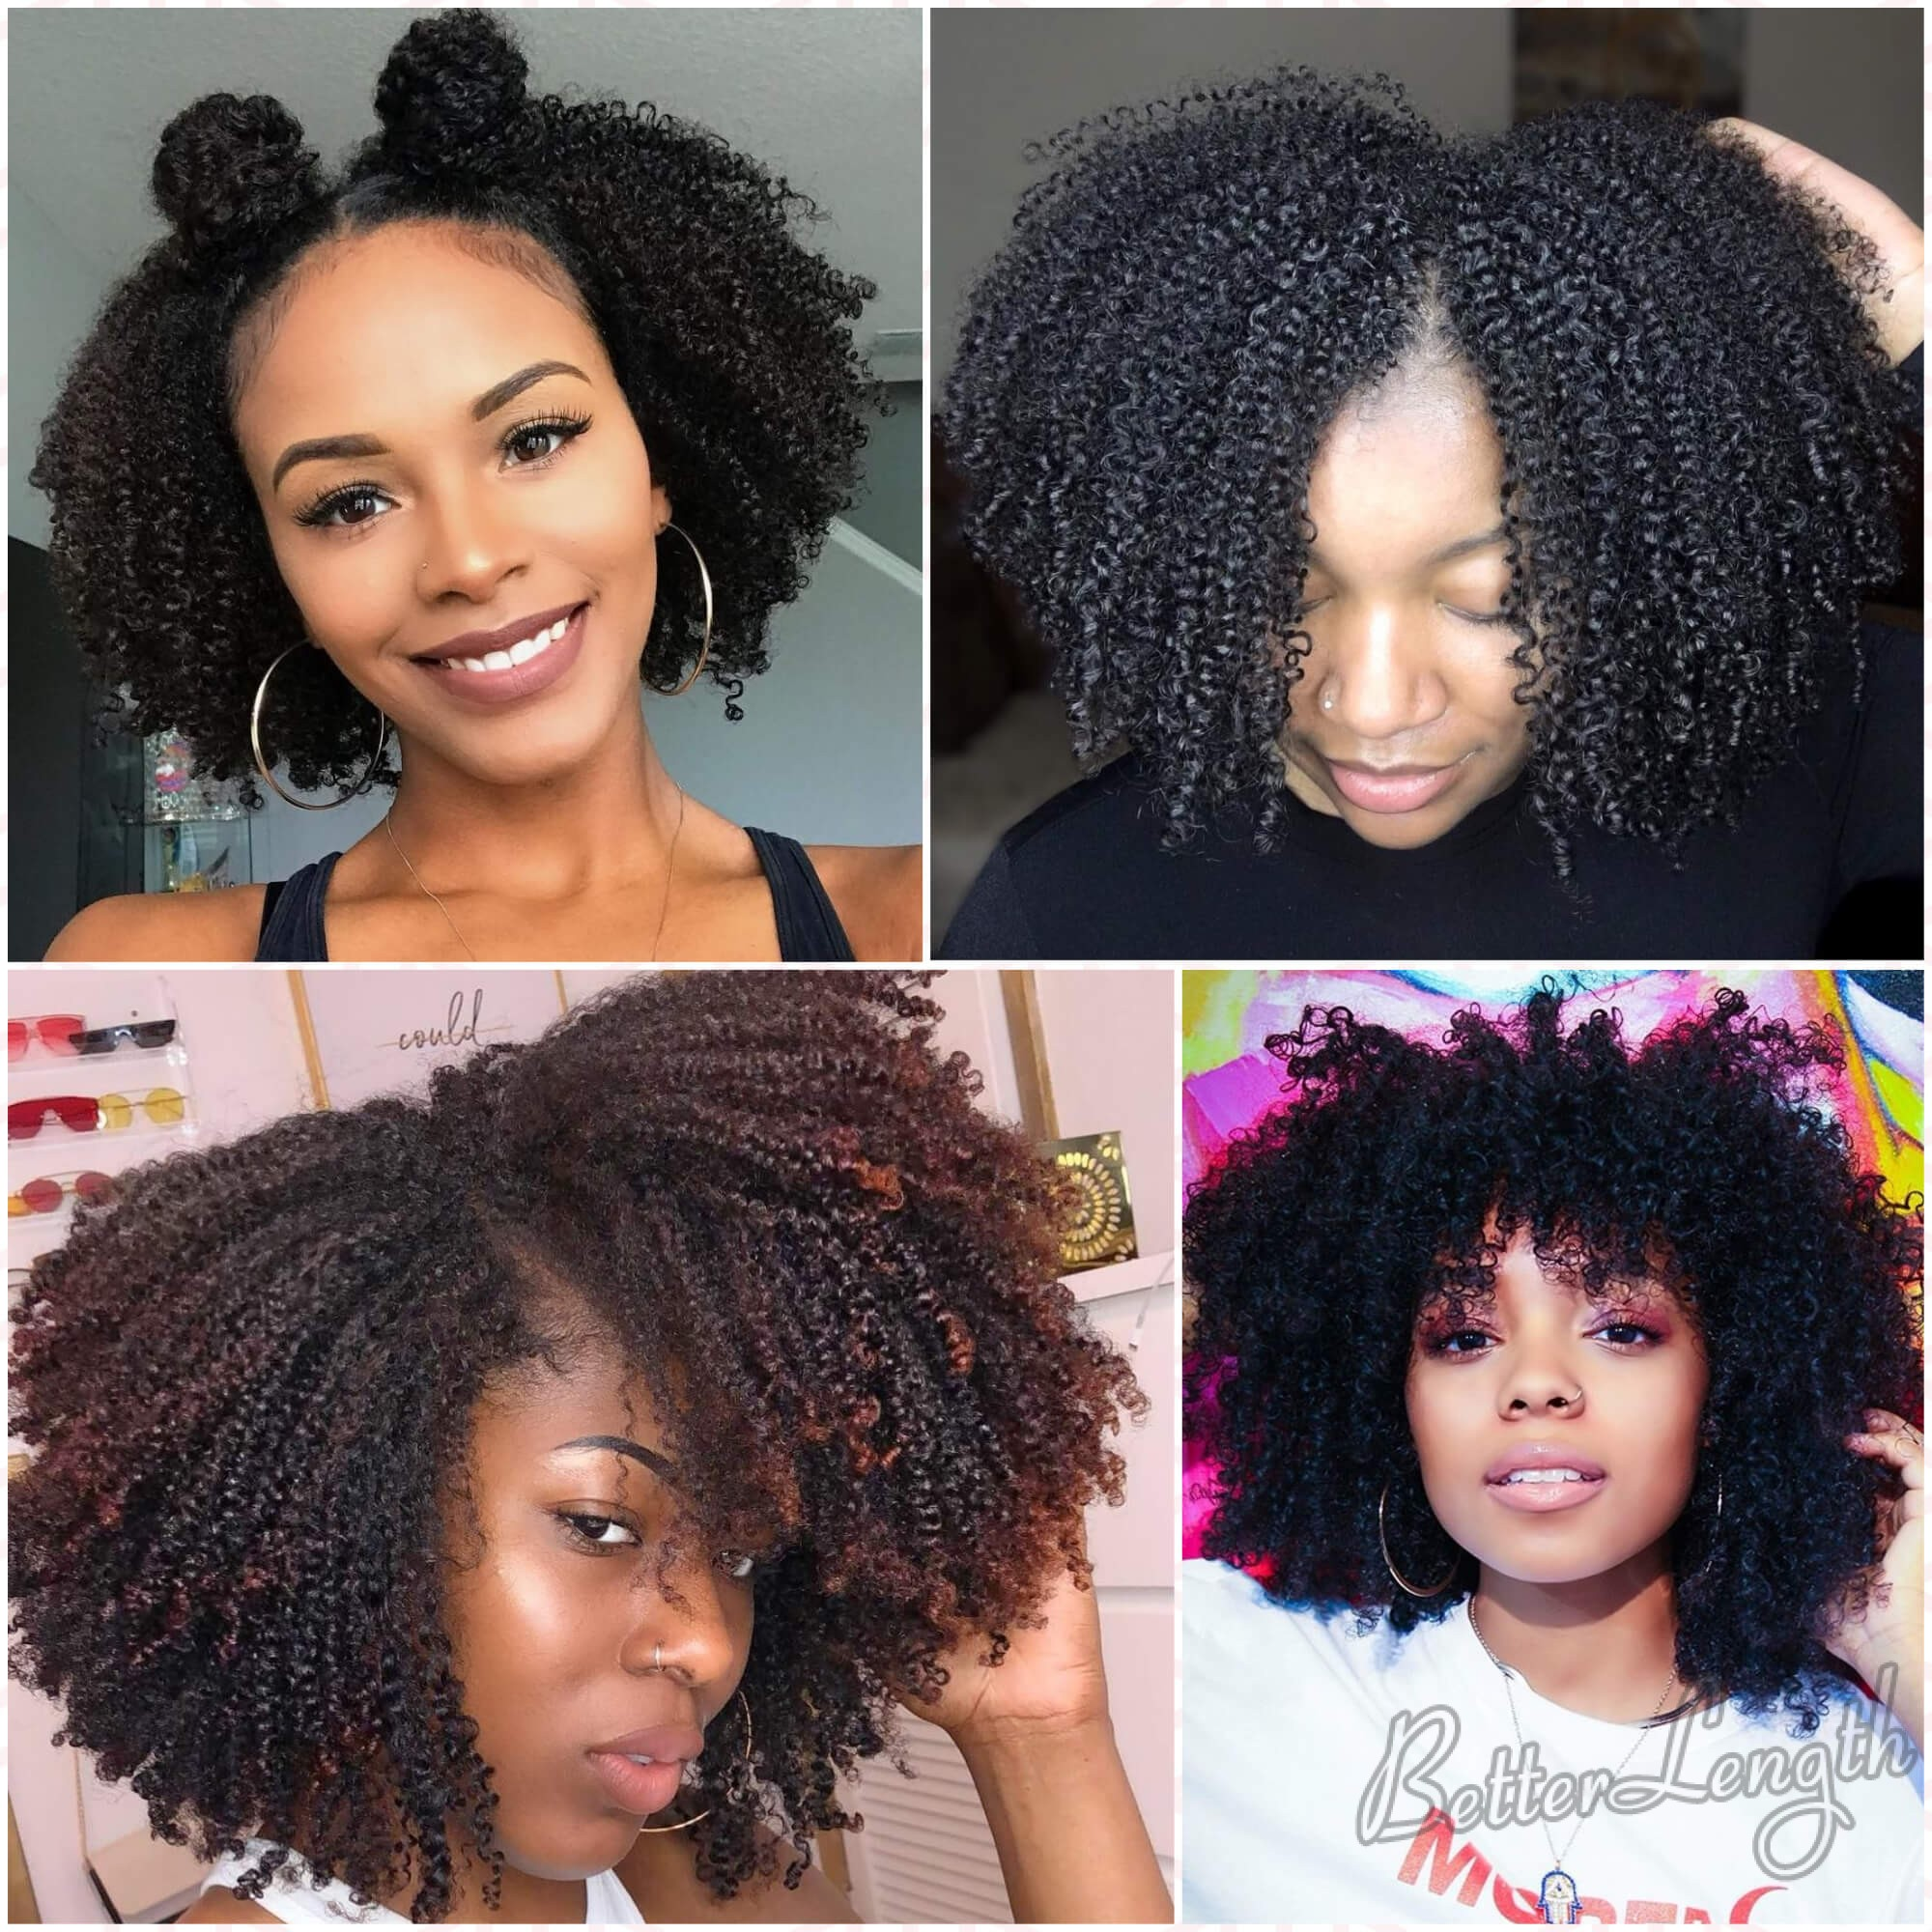 HOW TO DETERMINE YOUR TEXTURE AND CHOOSE YOUR TEXTURED EXTENSIONS